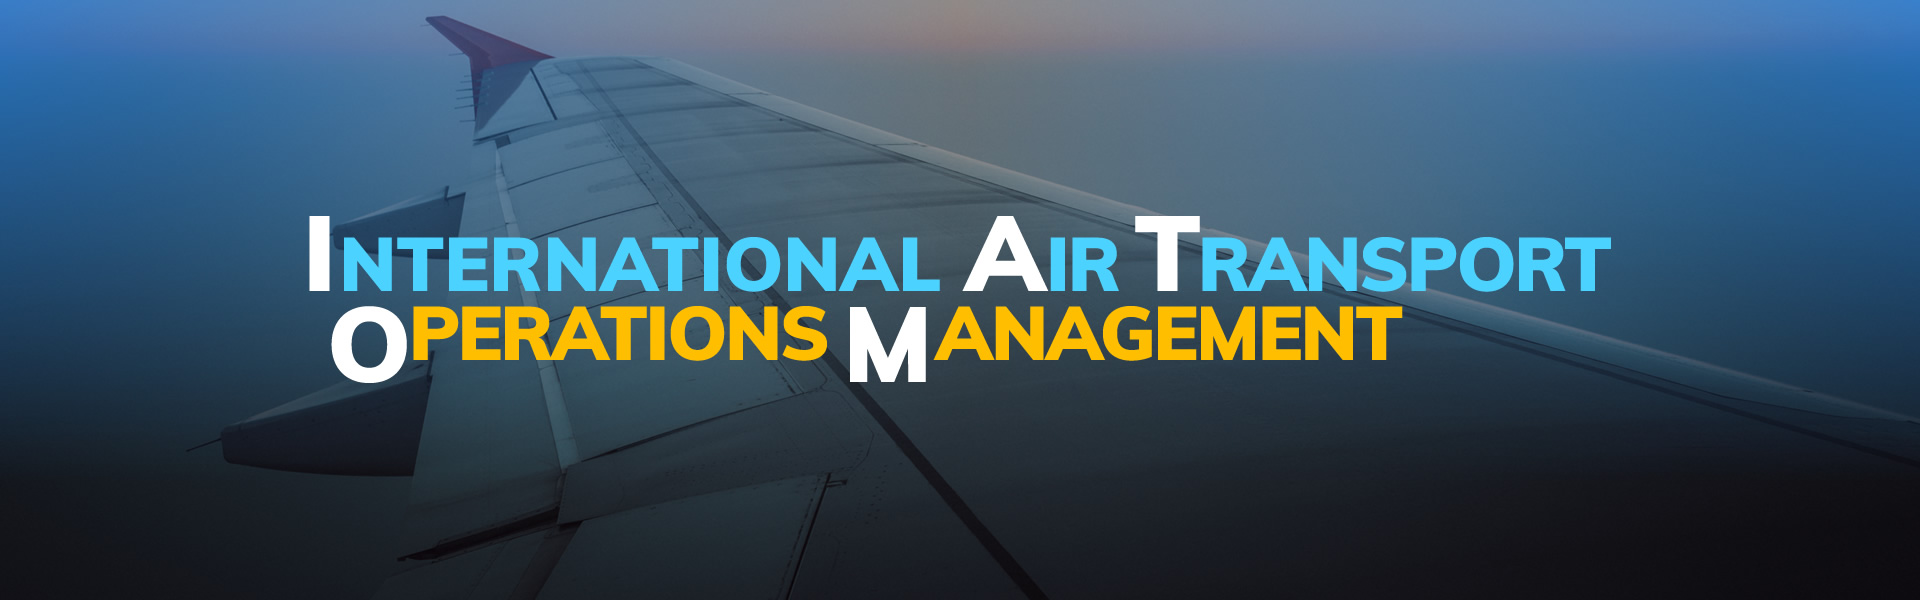 MSc in International Air Transport Operations Management